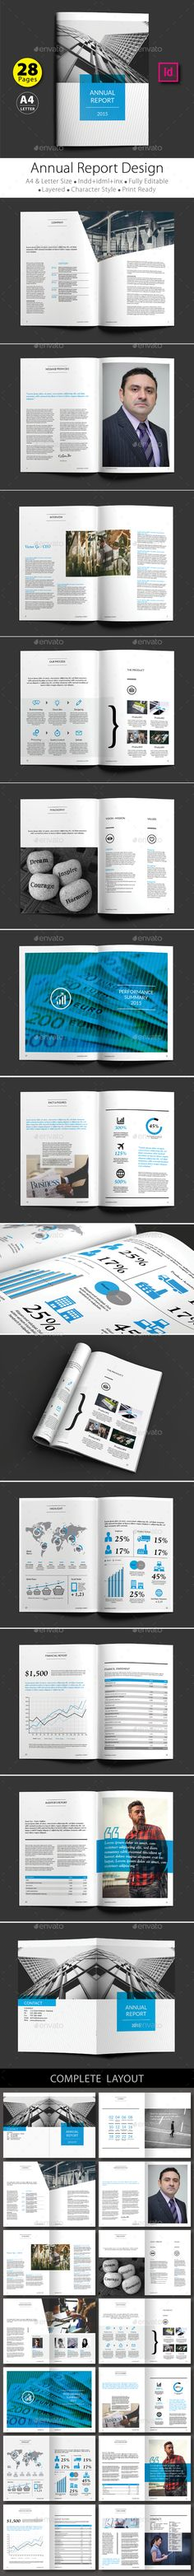 Annual Report Brochure  Indesign Magazine Templates Annual